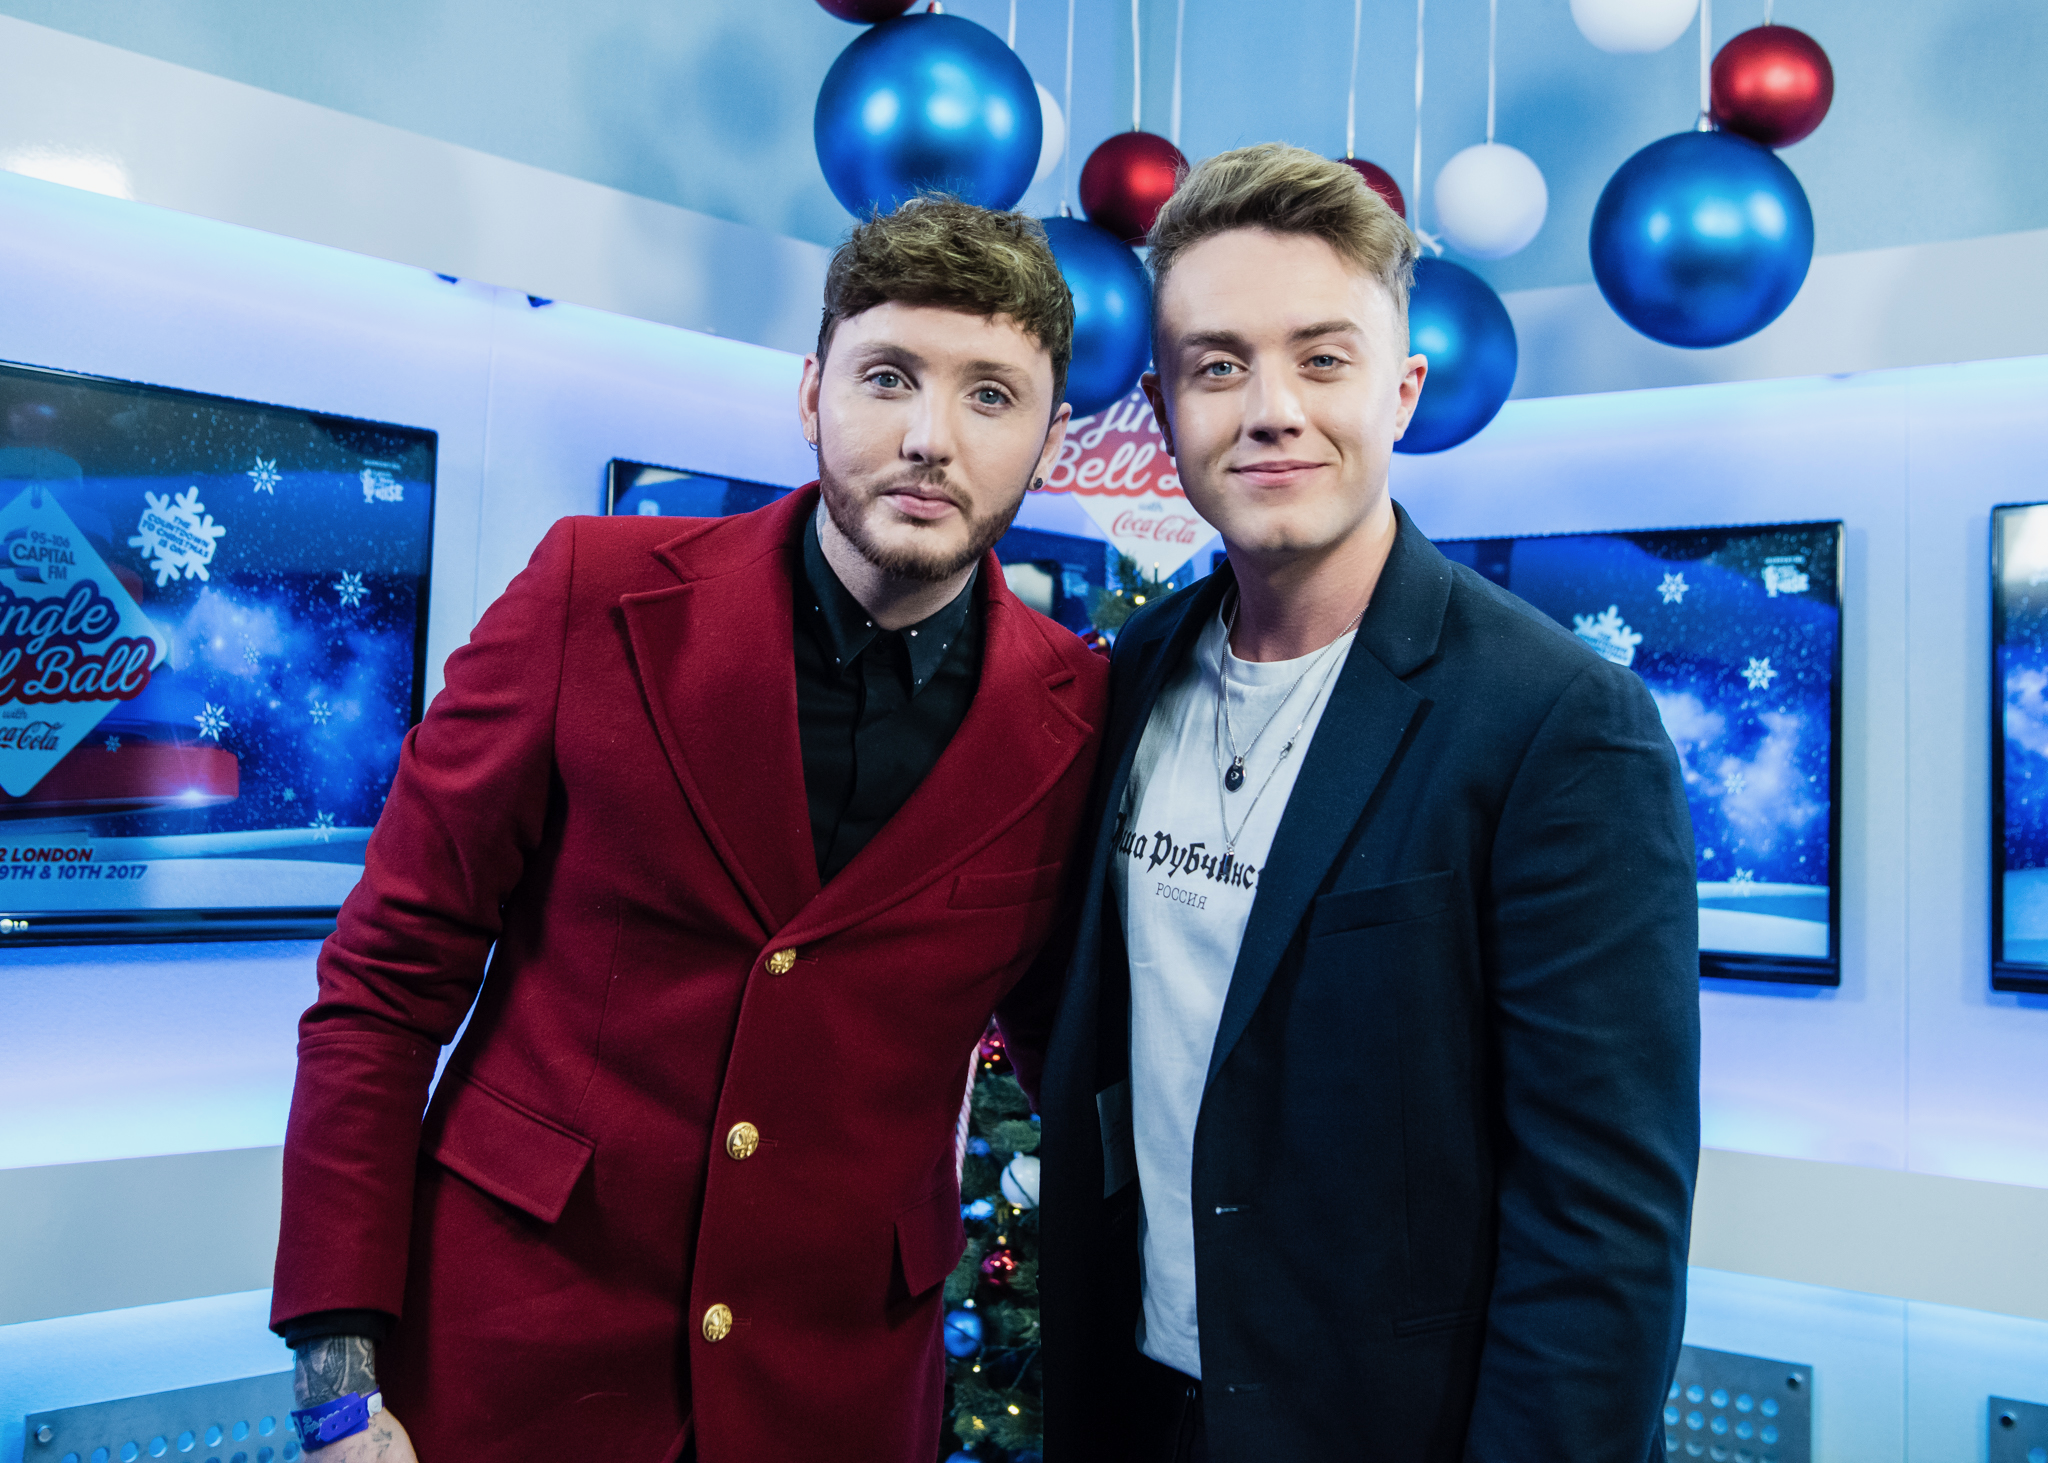 James Arthur with Roman Kemp